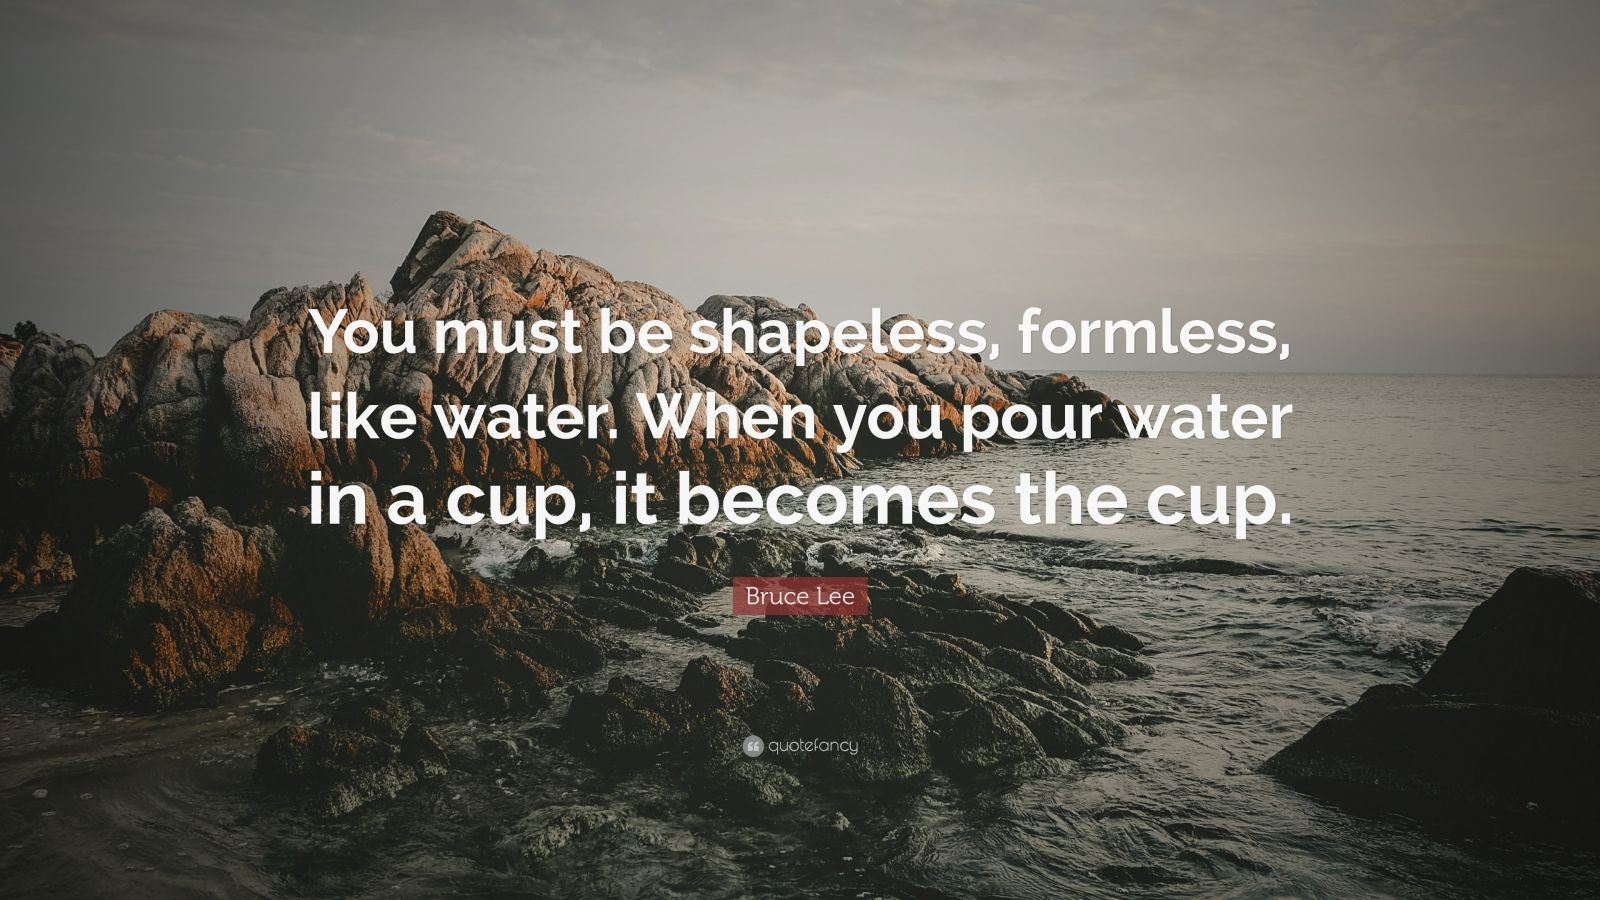 """Bruce Lee Quote: """"You must be shapeless, formless, like water. When you pour water in a cup, it becomes the cup."""""""